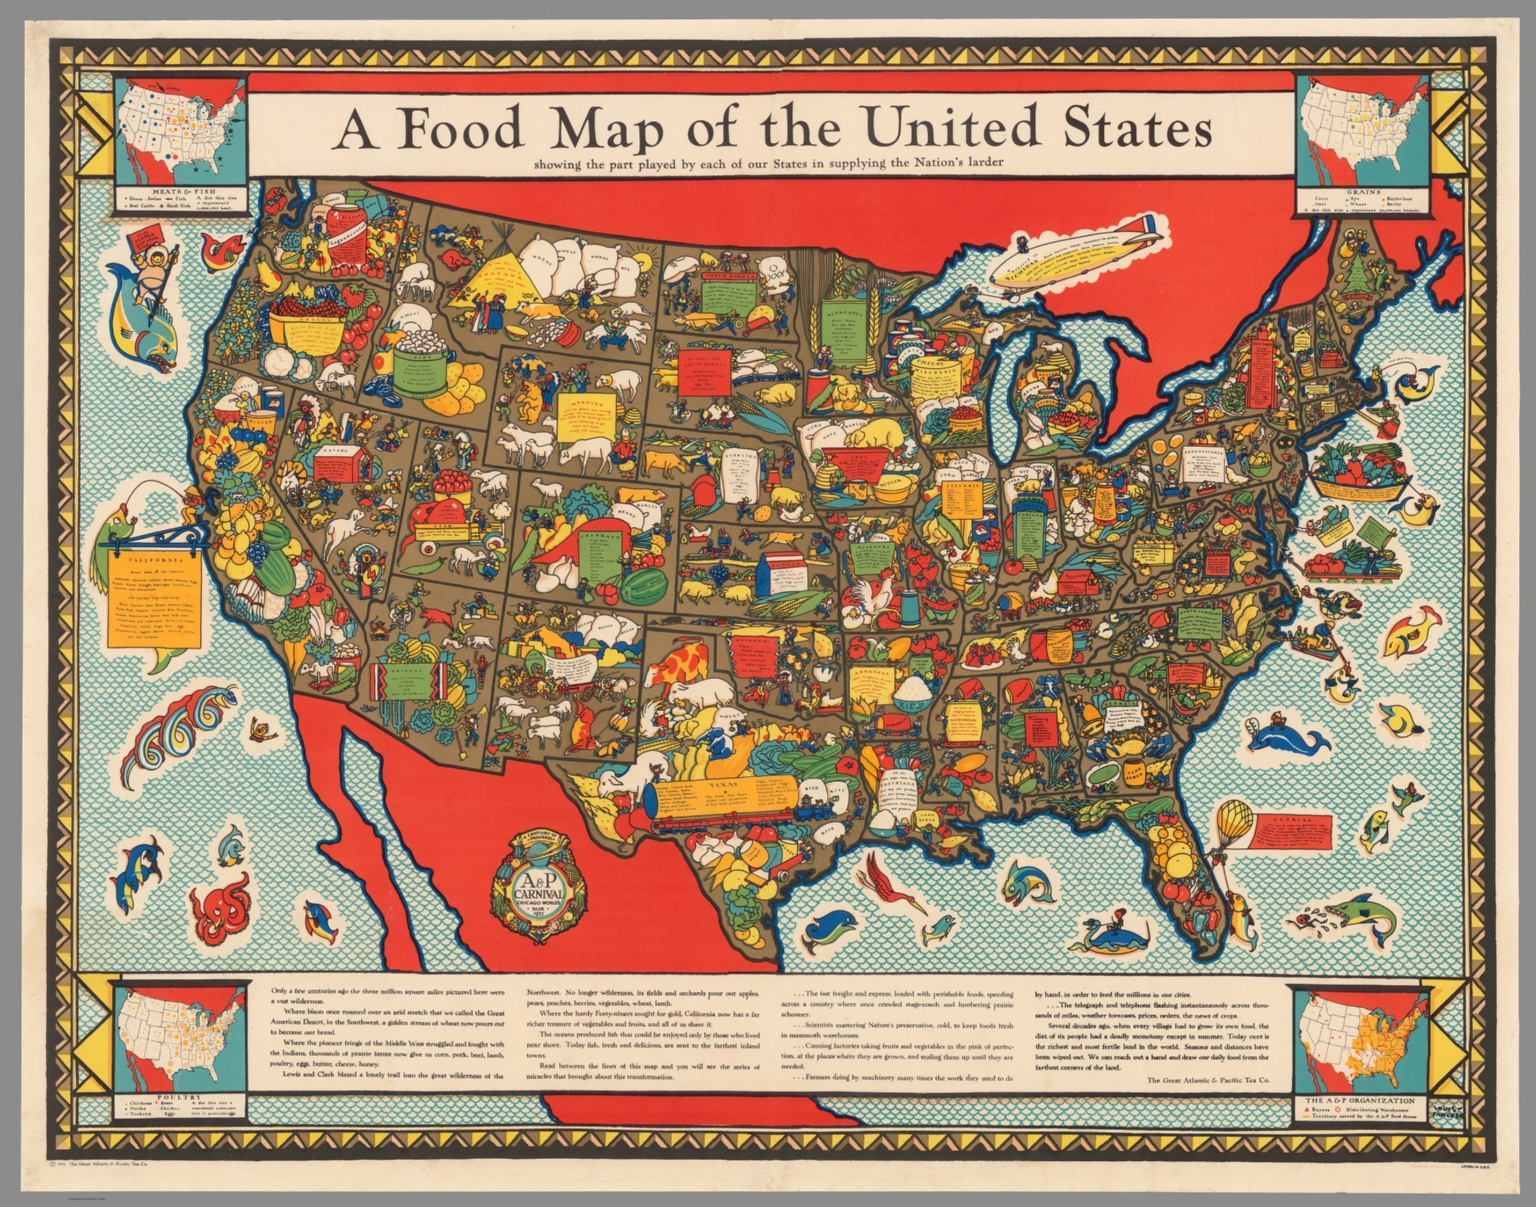 A Food Map of the United States · HIST 1952 Go To The Map on get your map, follow the map, funny map, go to home, put on the map, read the map, map key, check the map, map of the map, or map, search the map, find the map, about the map, how to use the map,